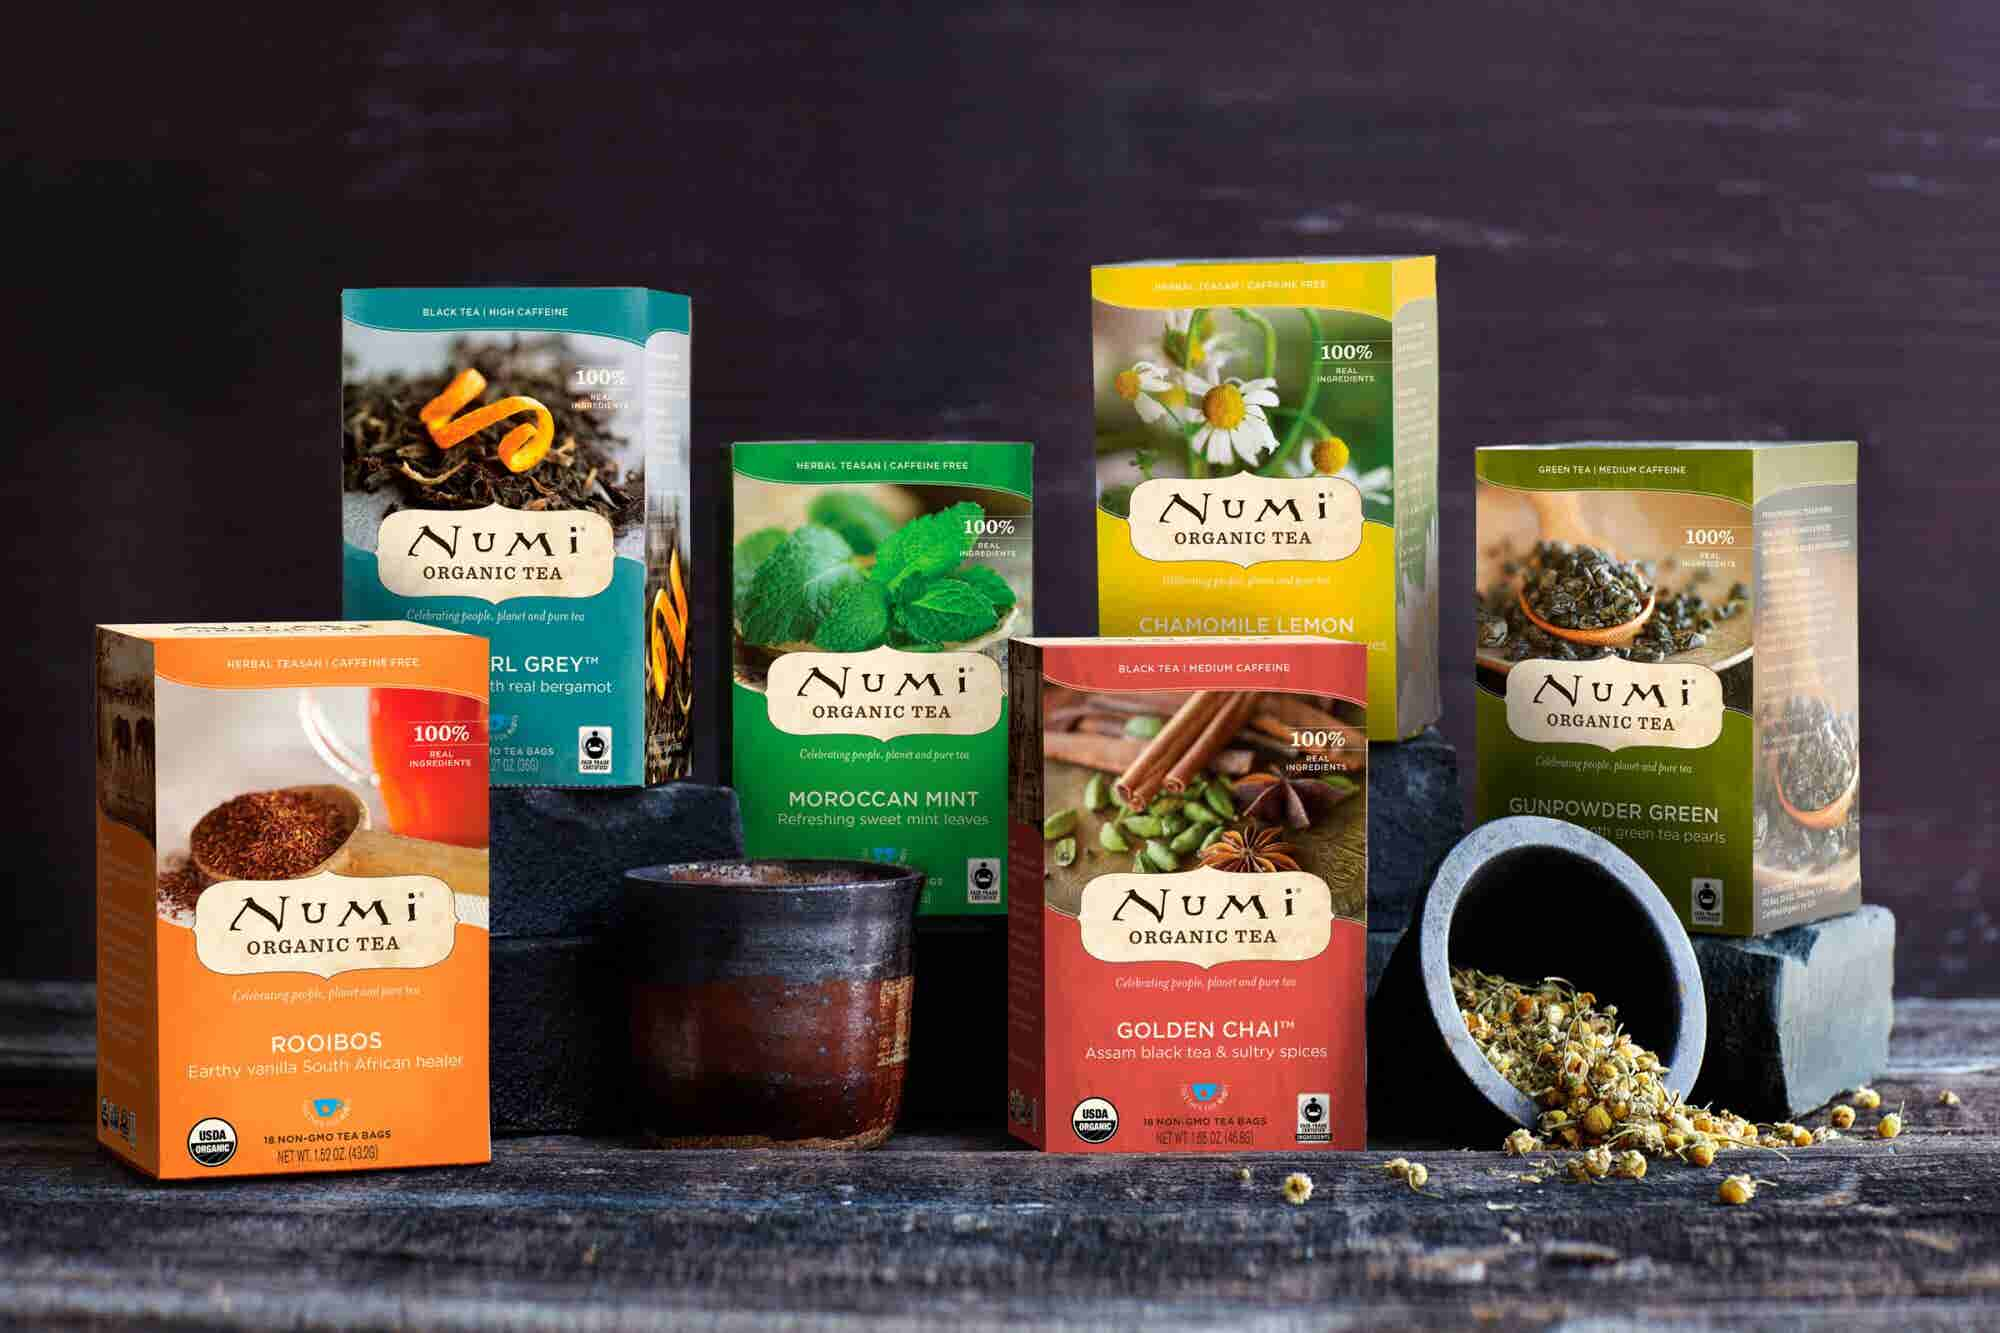 This Global Tea Company Is Infused With Sustainability Practices, Allowing It to Win Huge Tech Companies as Customers